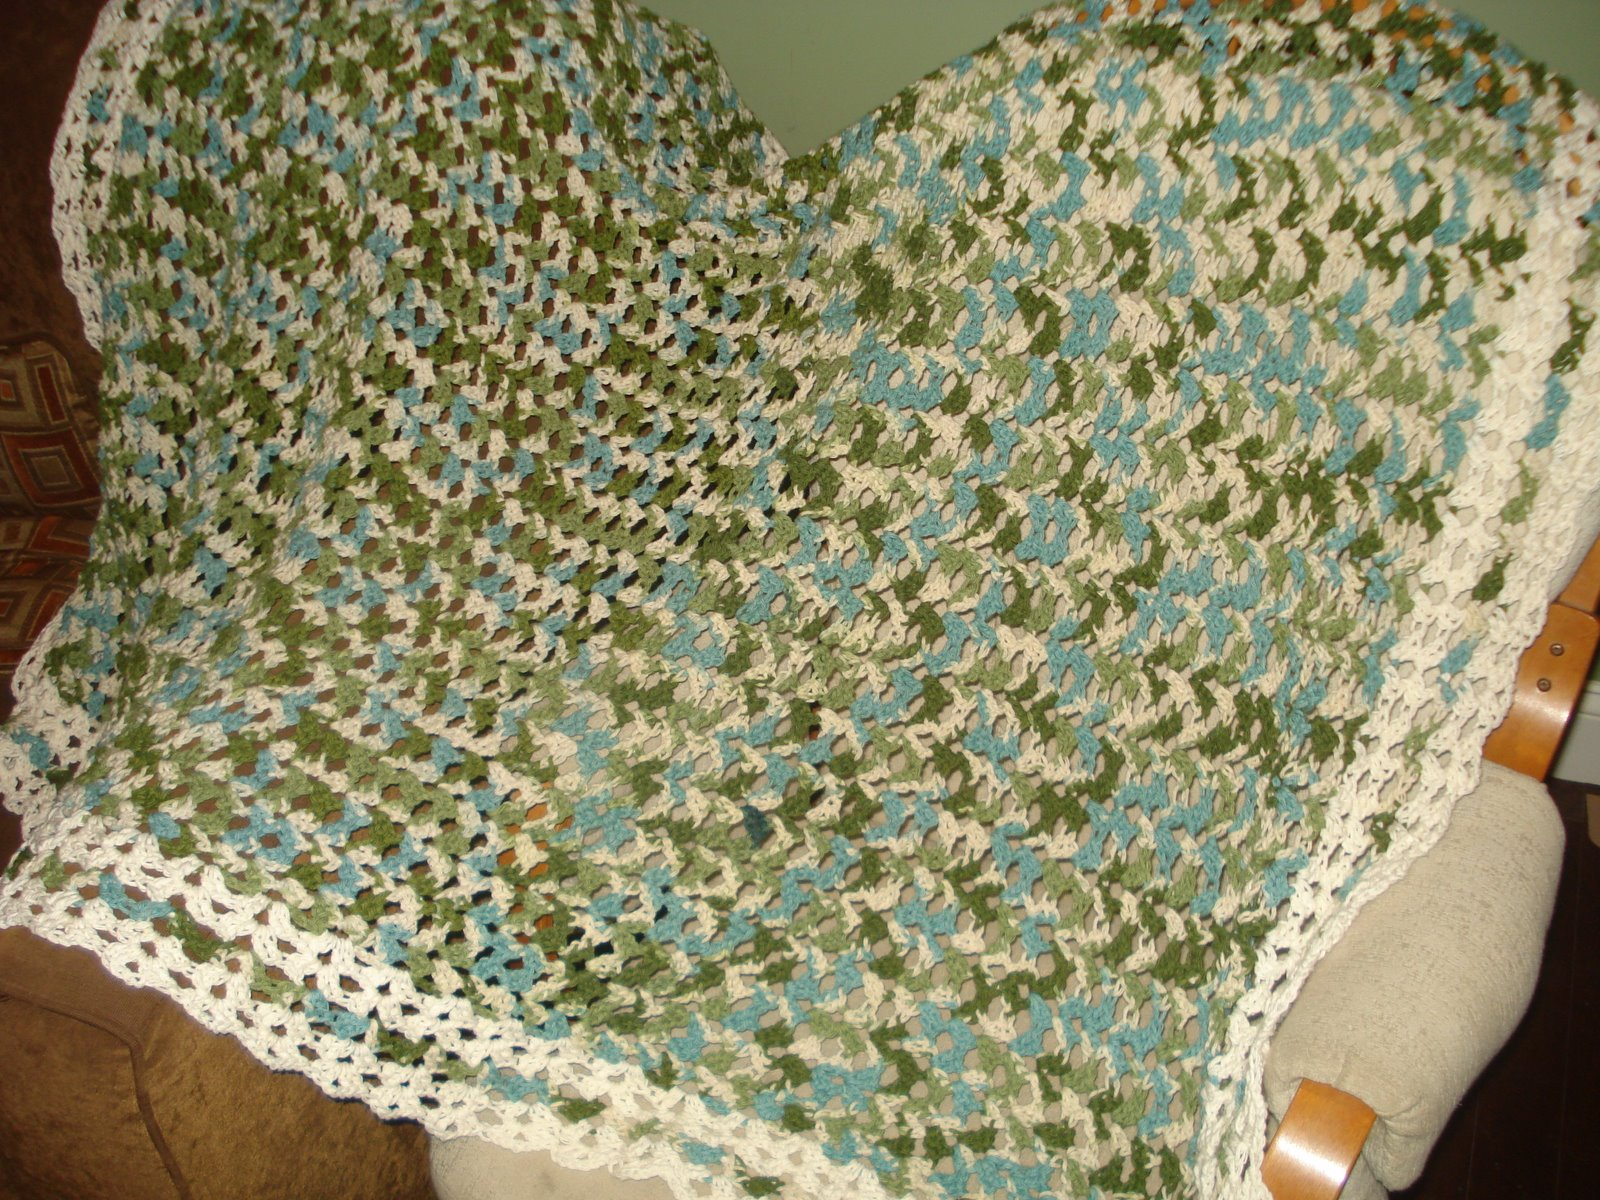 Crocheted Blanket with Variegated Yarn